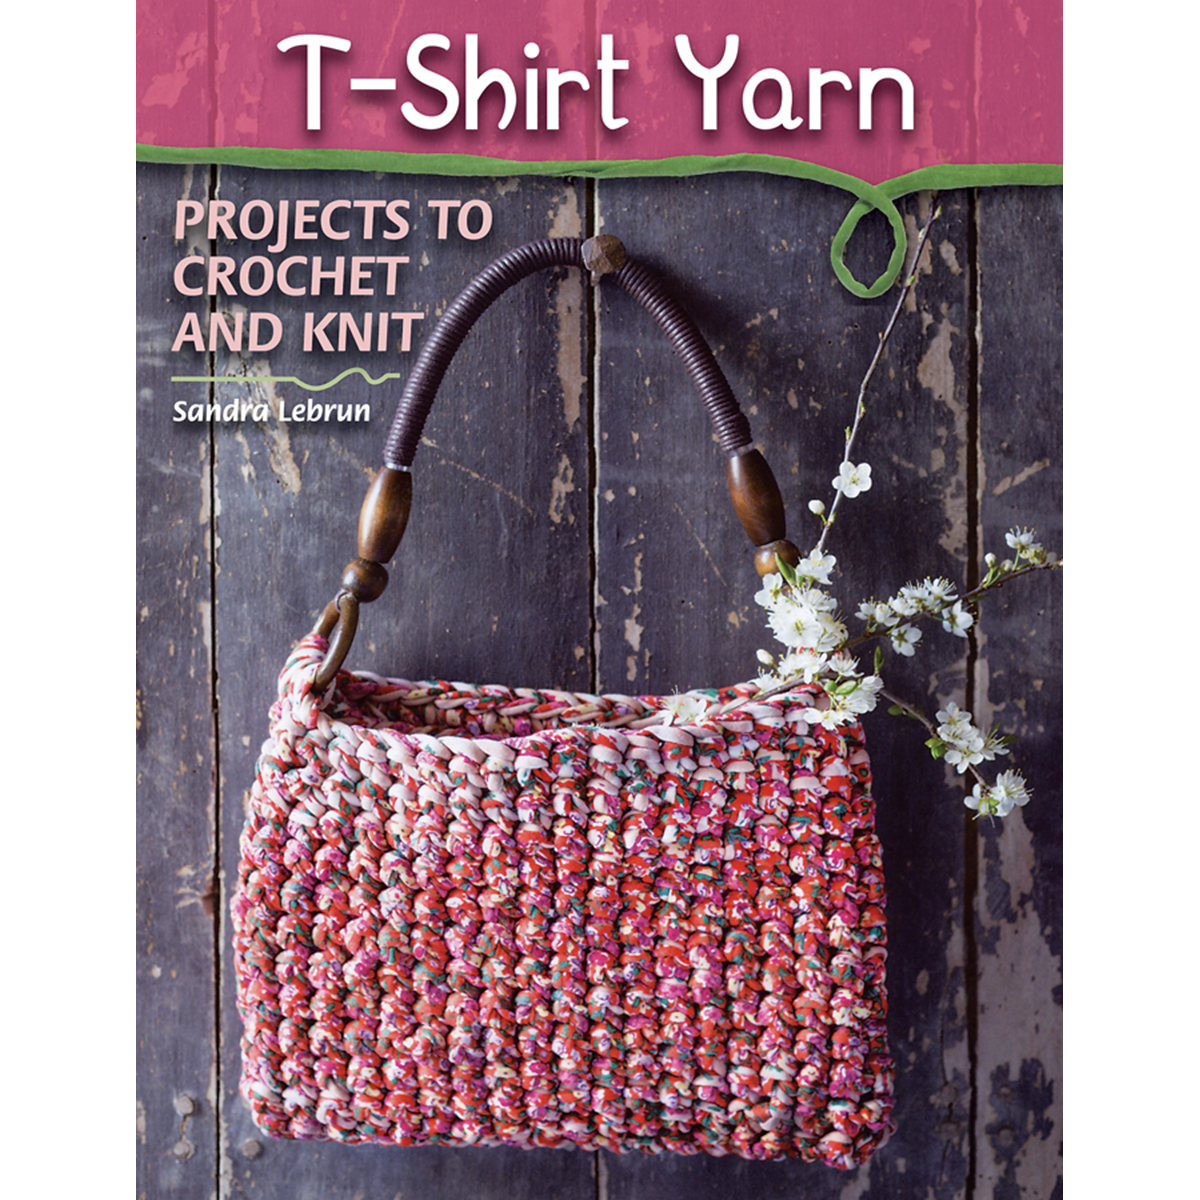 Crochet Patterns For T Shirt Yarn : T-Shirt Yarn